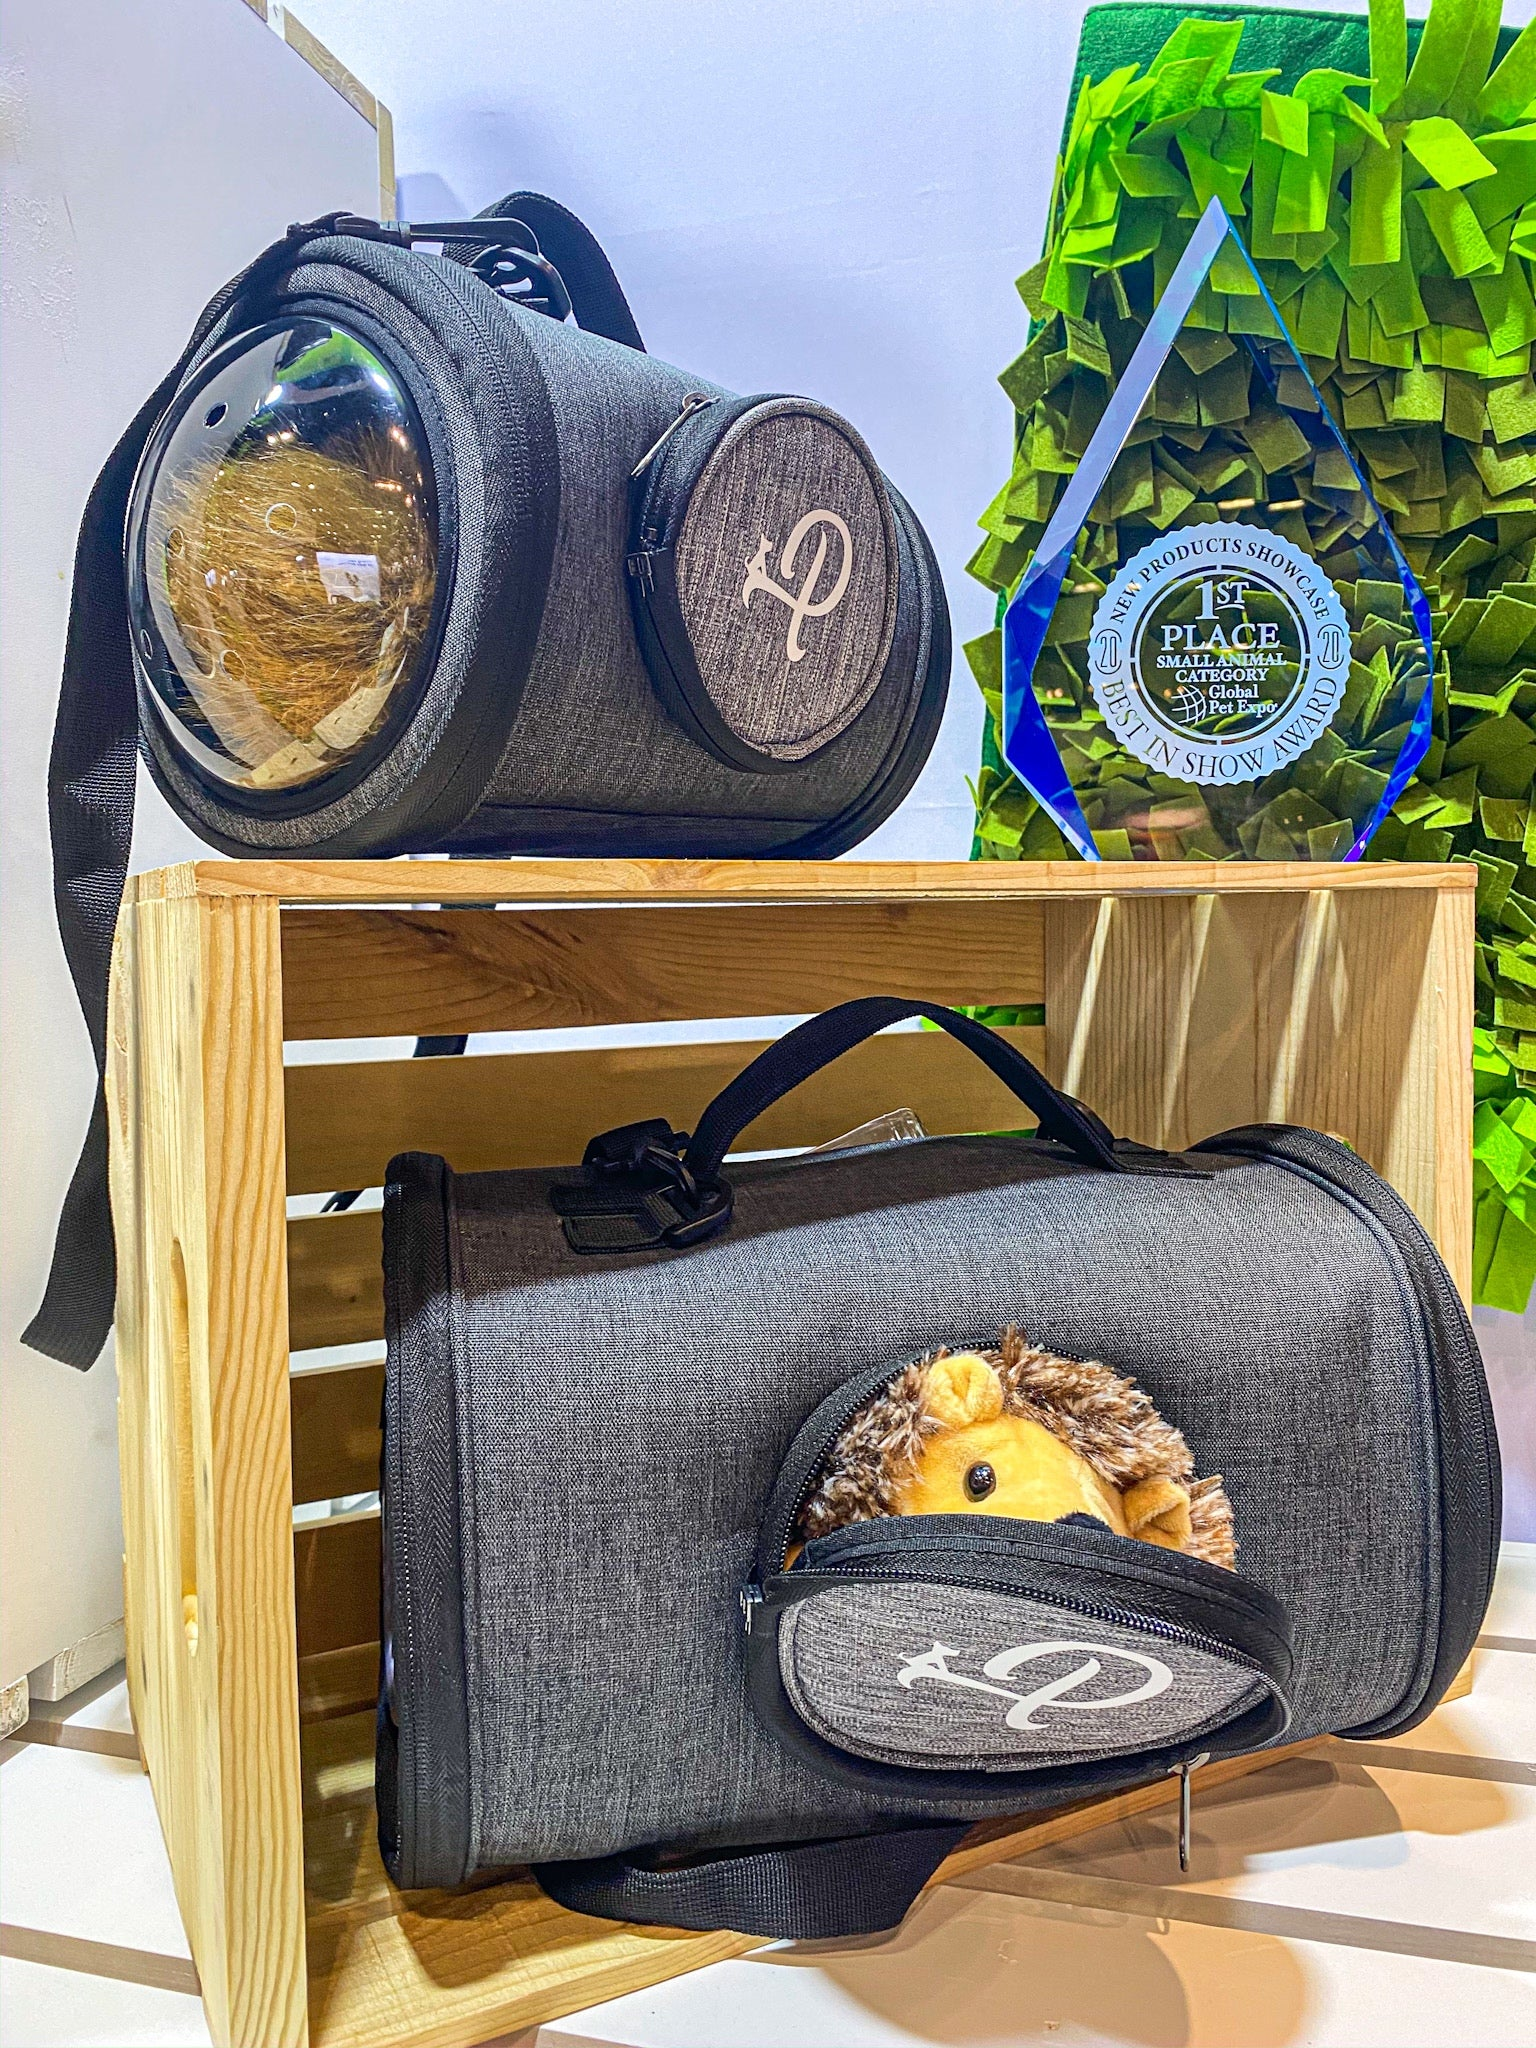 Petique's Award Winning Small Animal Pet Carriers